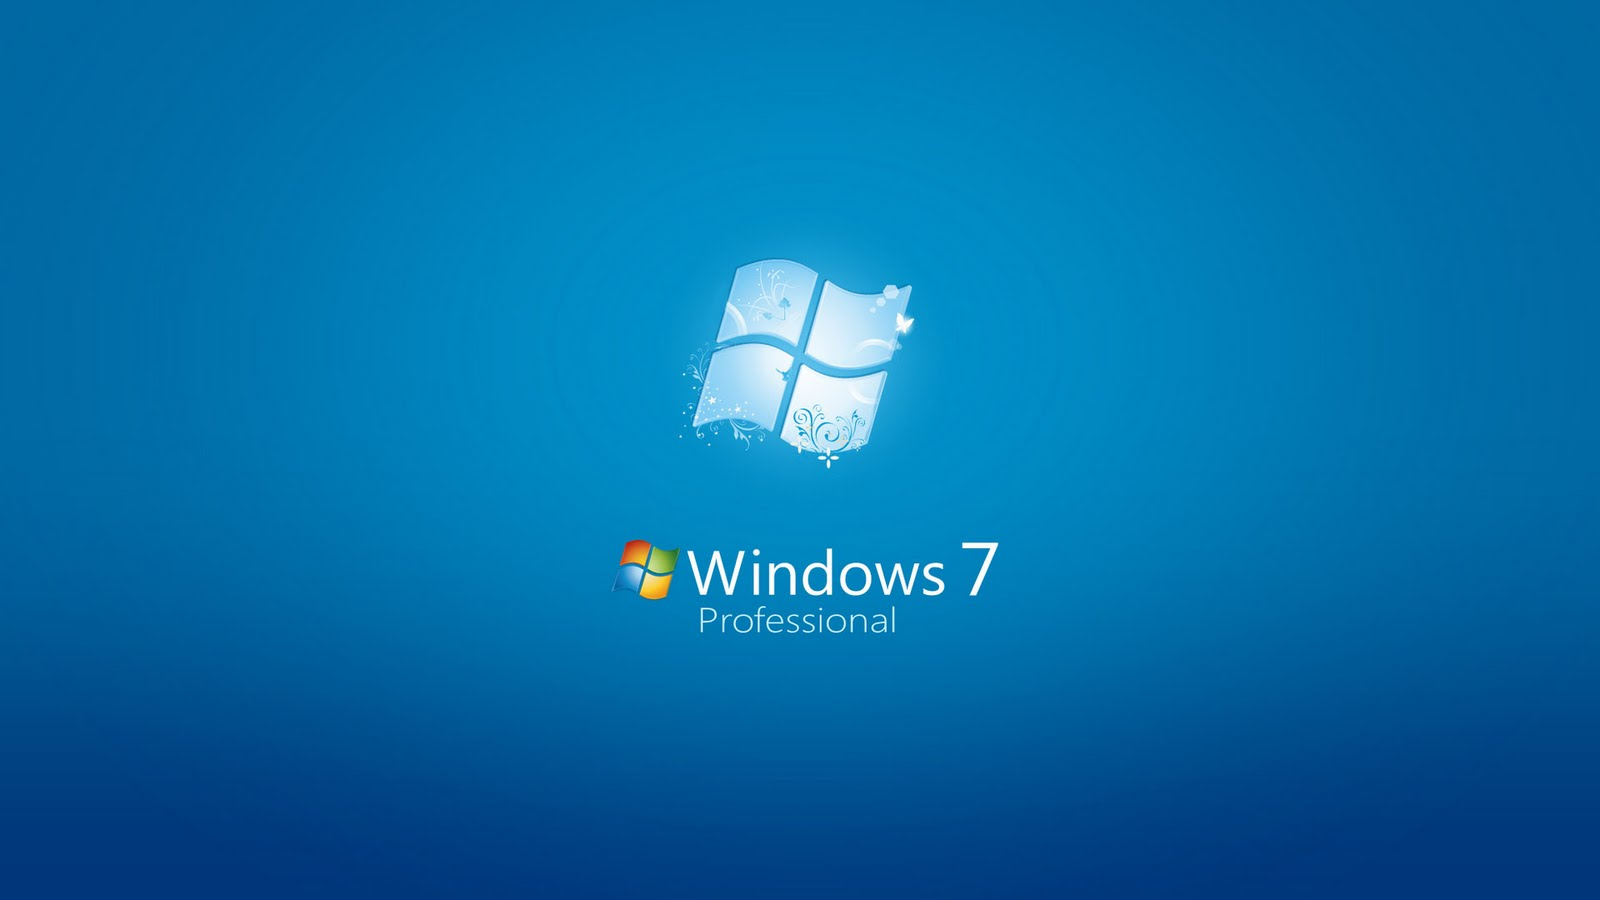 Microsoft Windows 7[Professional][Home Premium]Direct Download Links